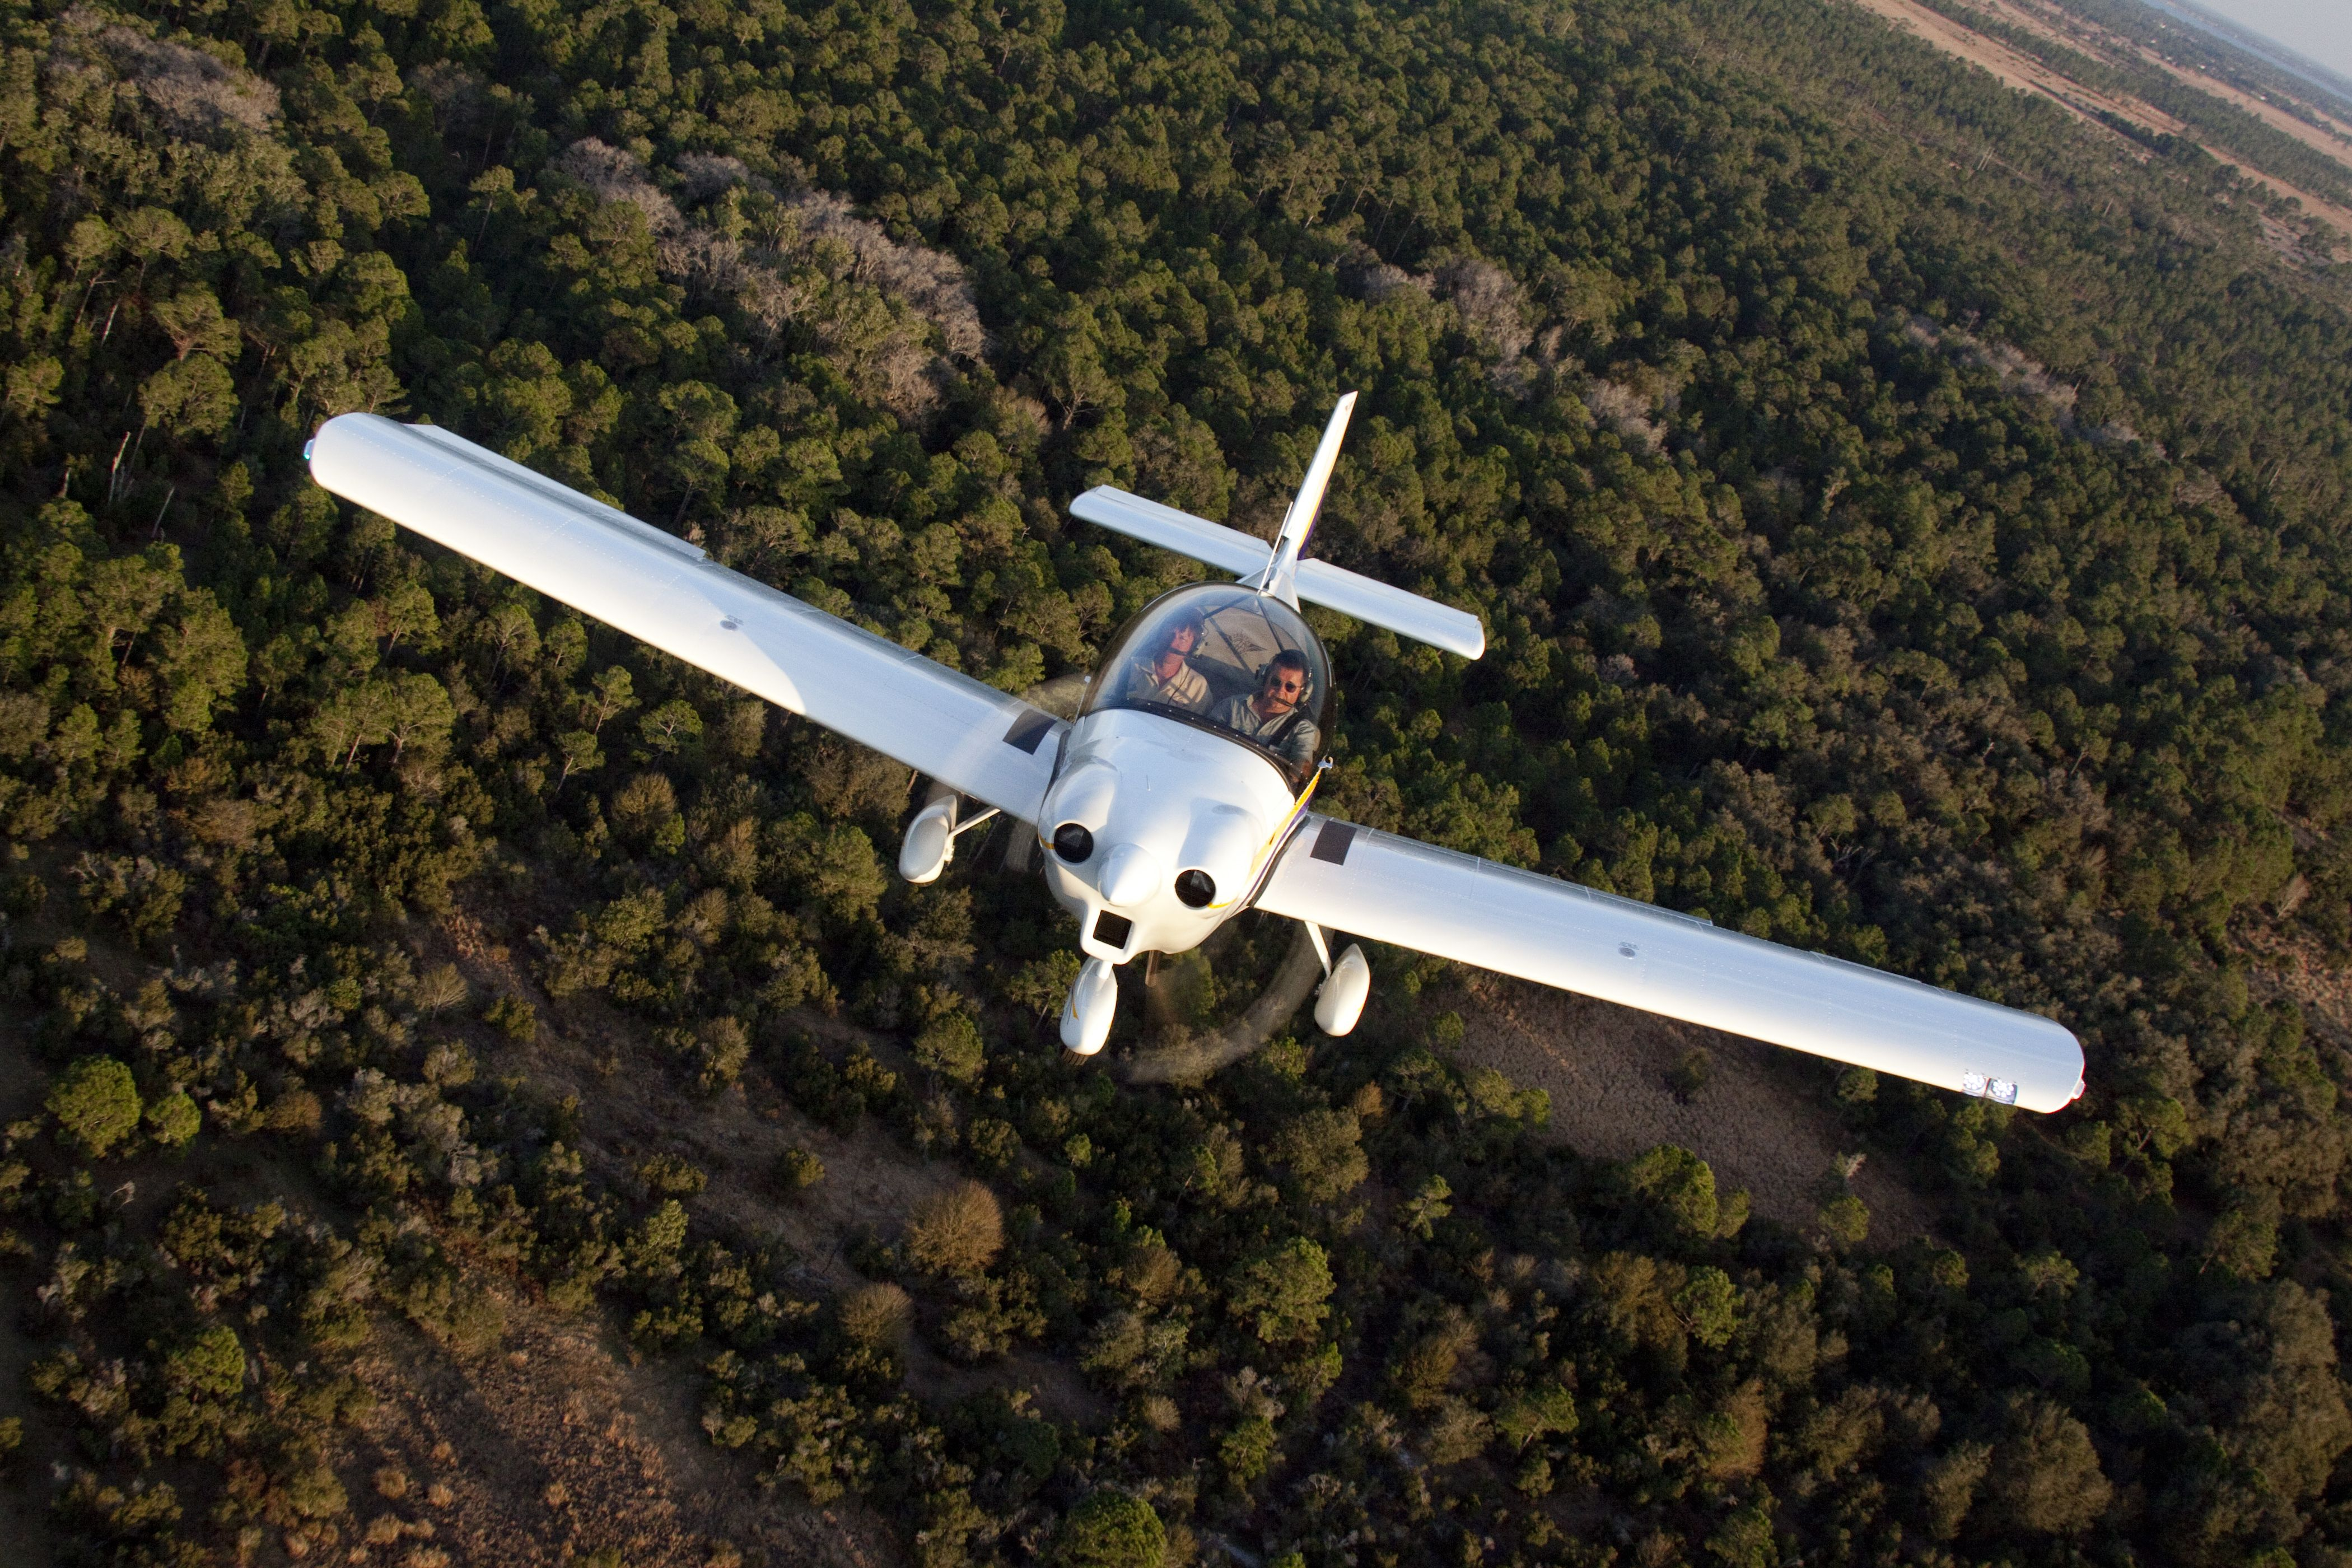 Flying the Zenith CH 650 with the UL Power engine   Zenith